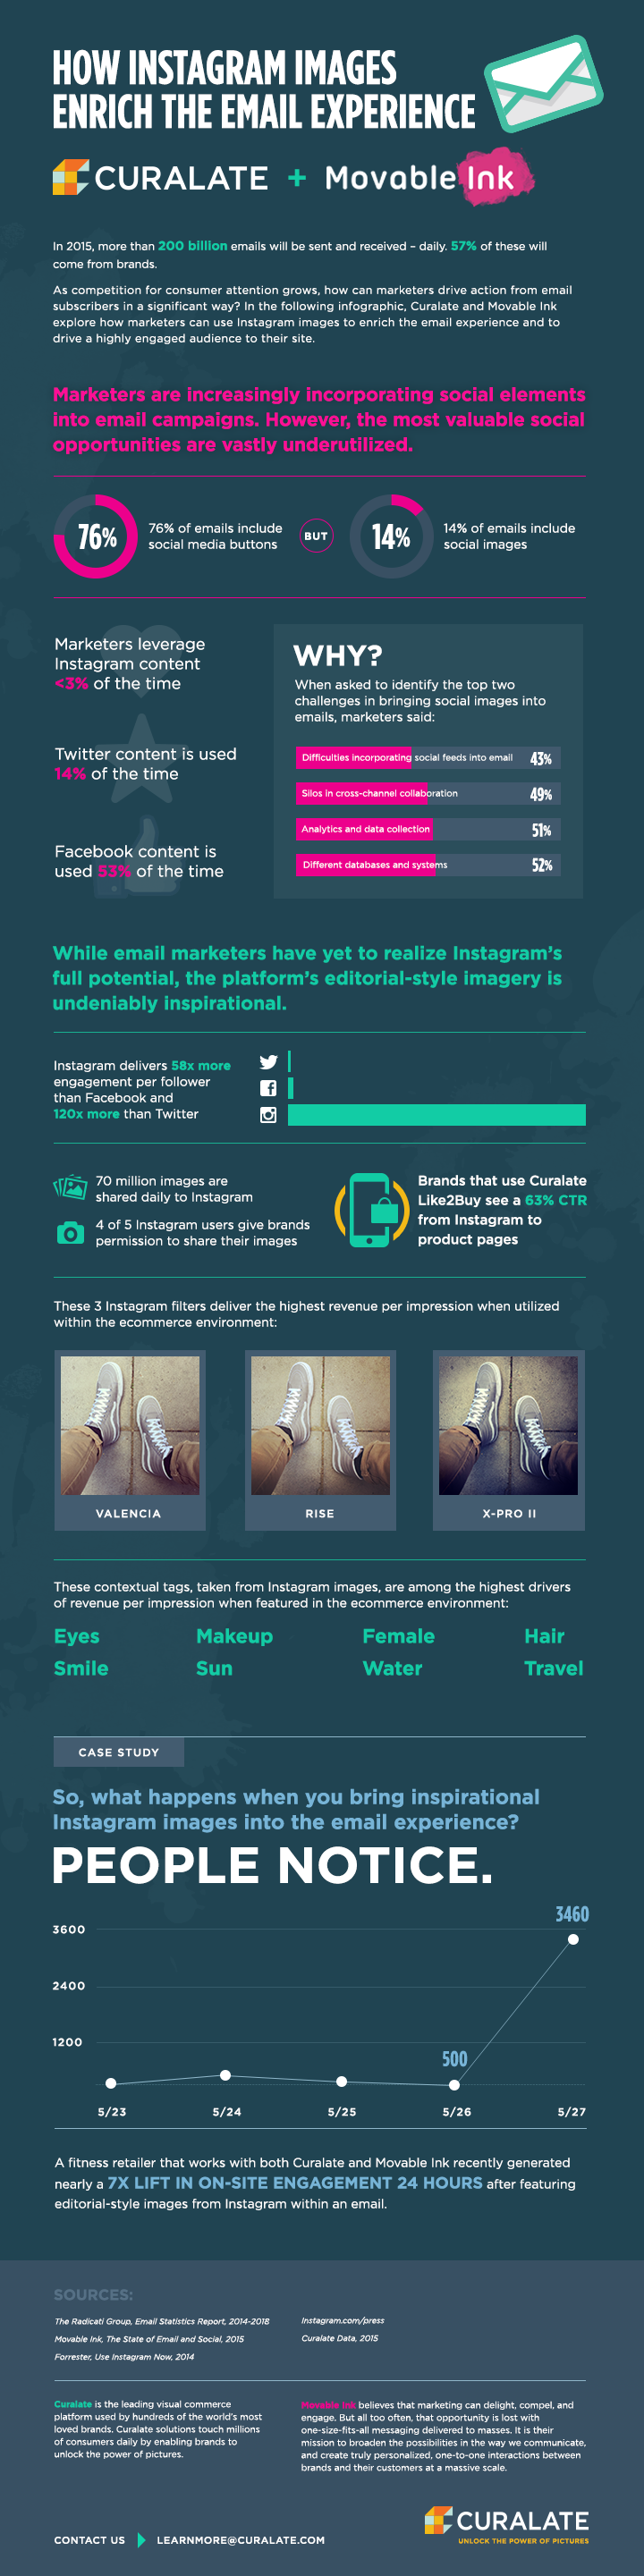 email-marketing-instagram-infographic.png